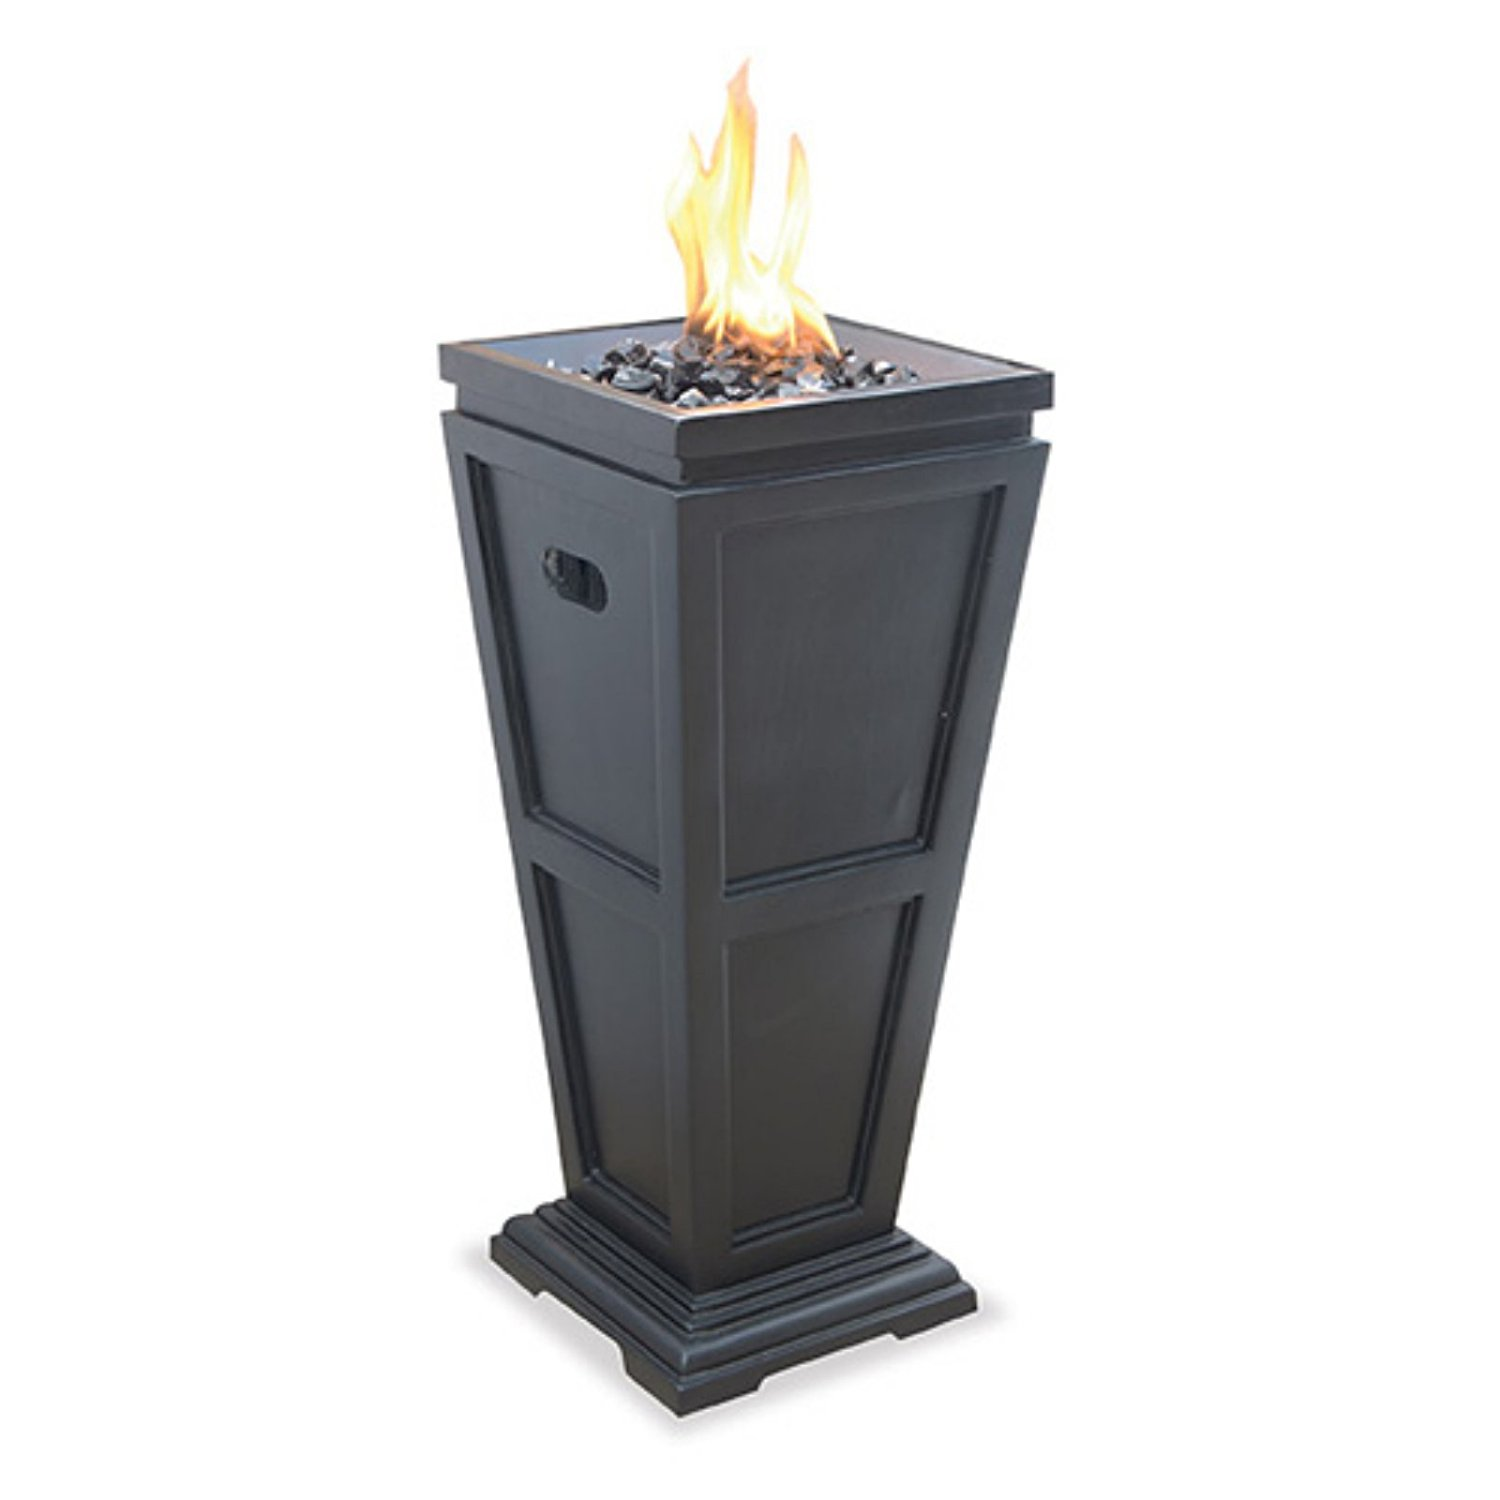 LP Gas Fire Pit Column, Classically Designed, Decorative Faux-Stone Slate Finish Base, Durable Stainless Steel Burner, Bundle With Ebook For Home Furniture